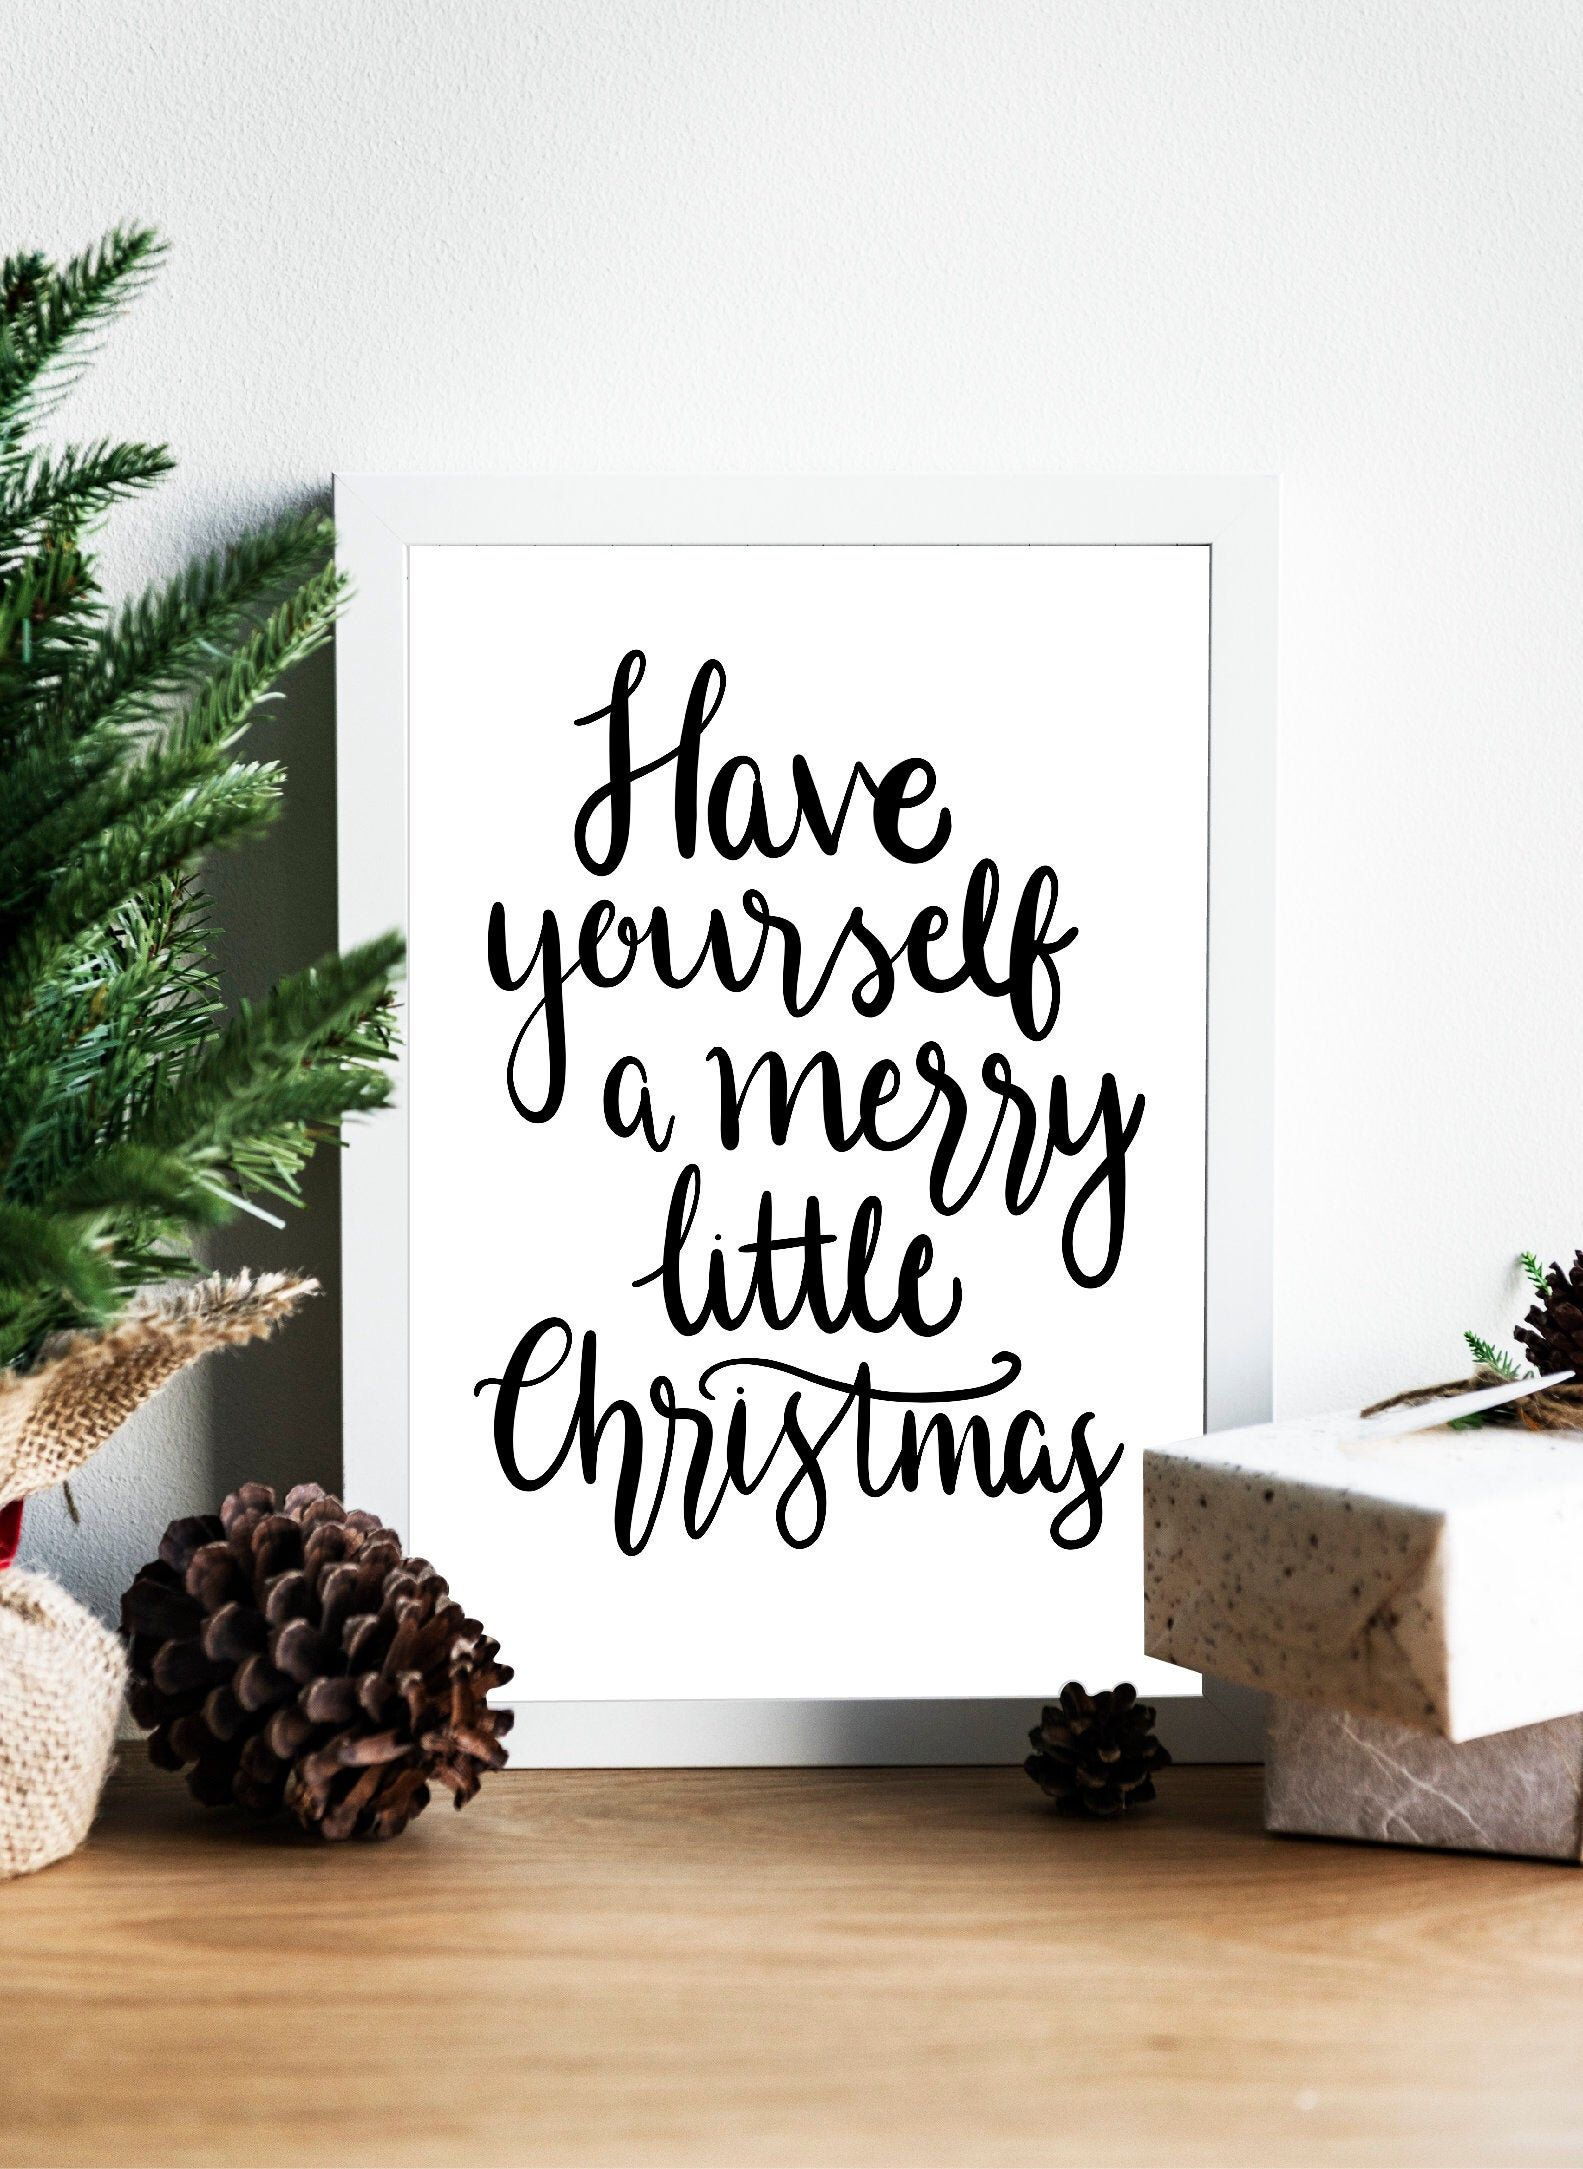 Have yourself a merry little christmas print - Christmas Print, Christmas Song Lyrics, Christmas ...